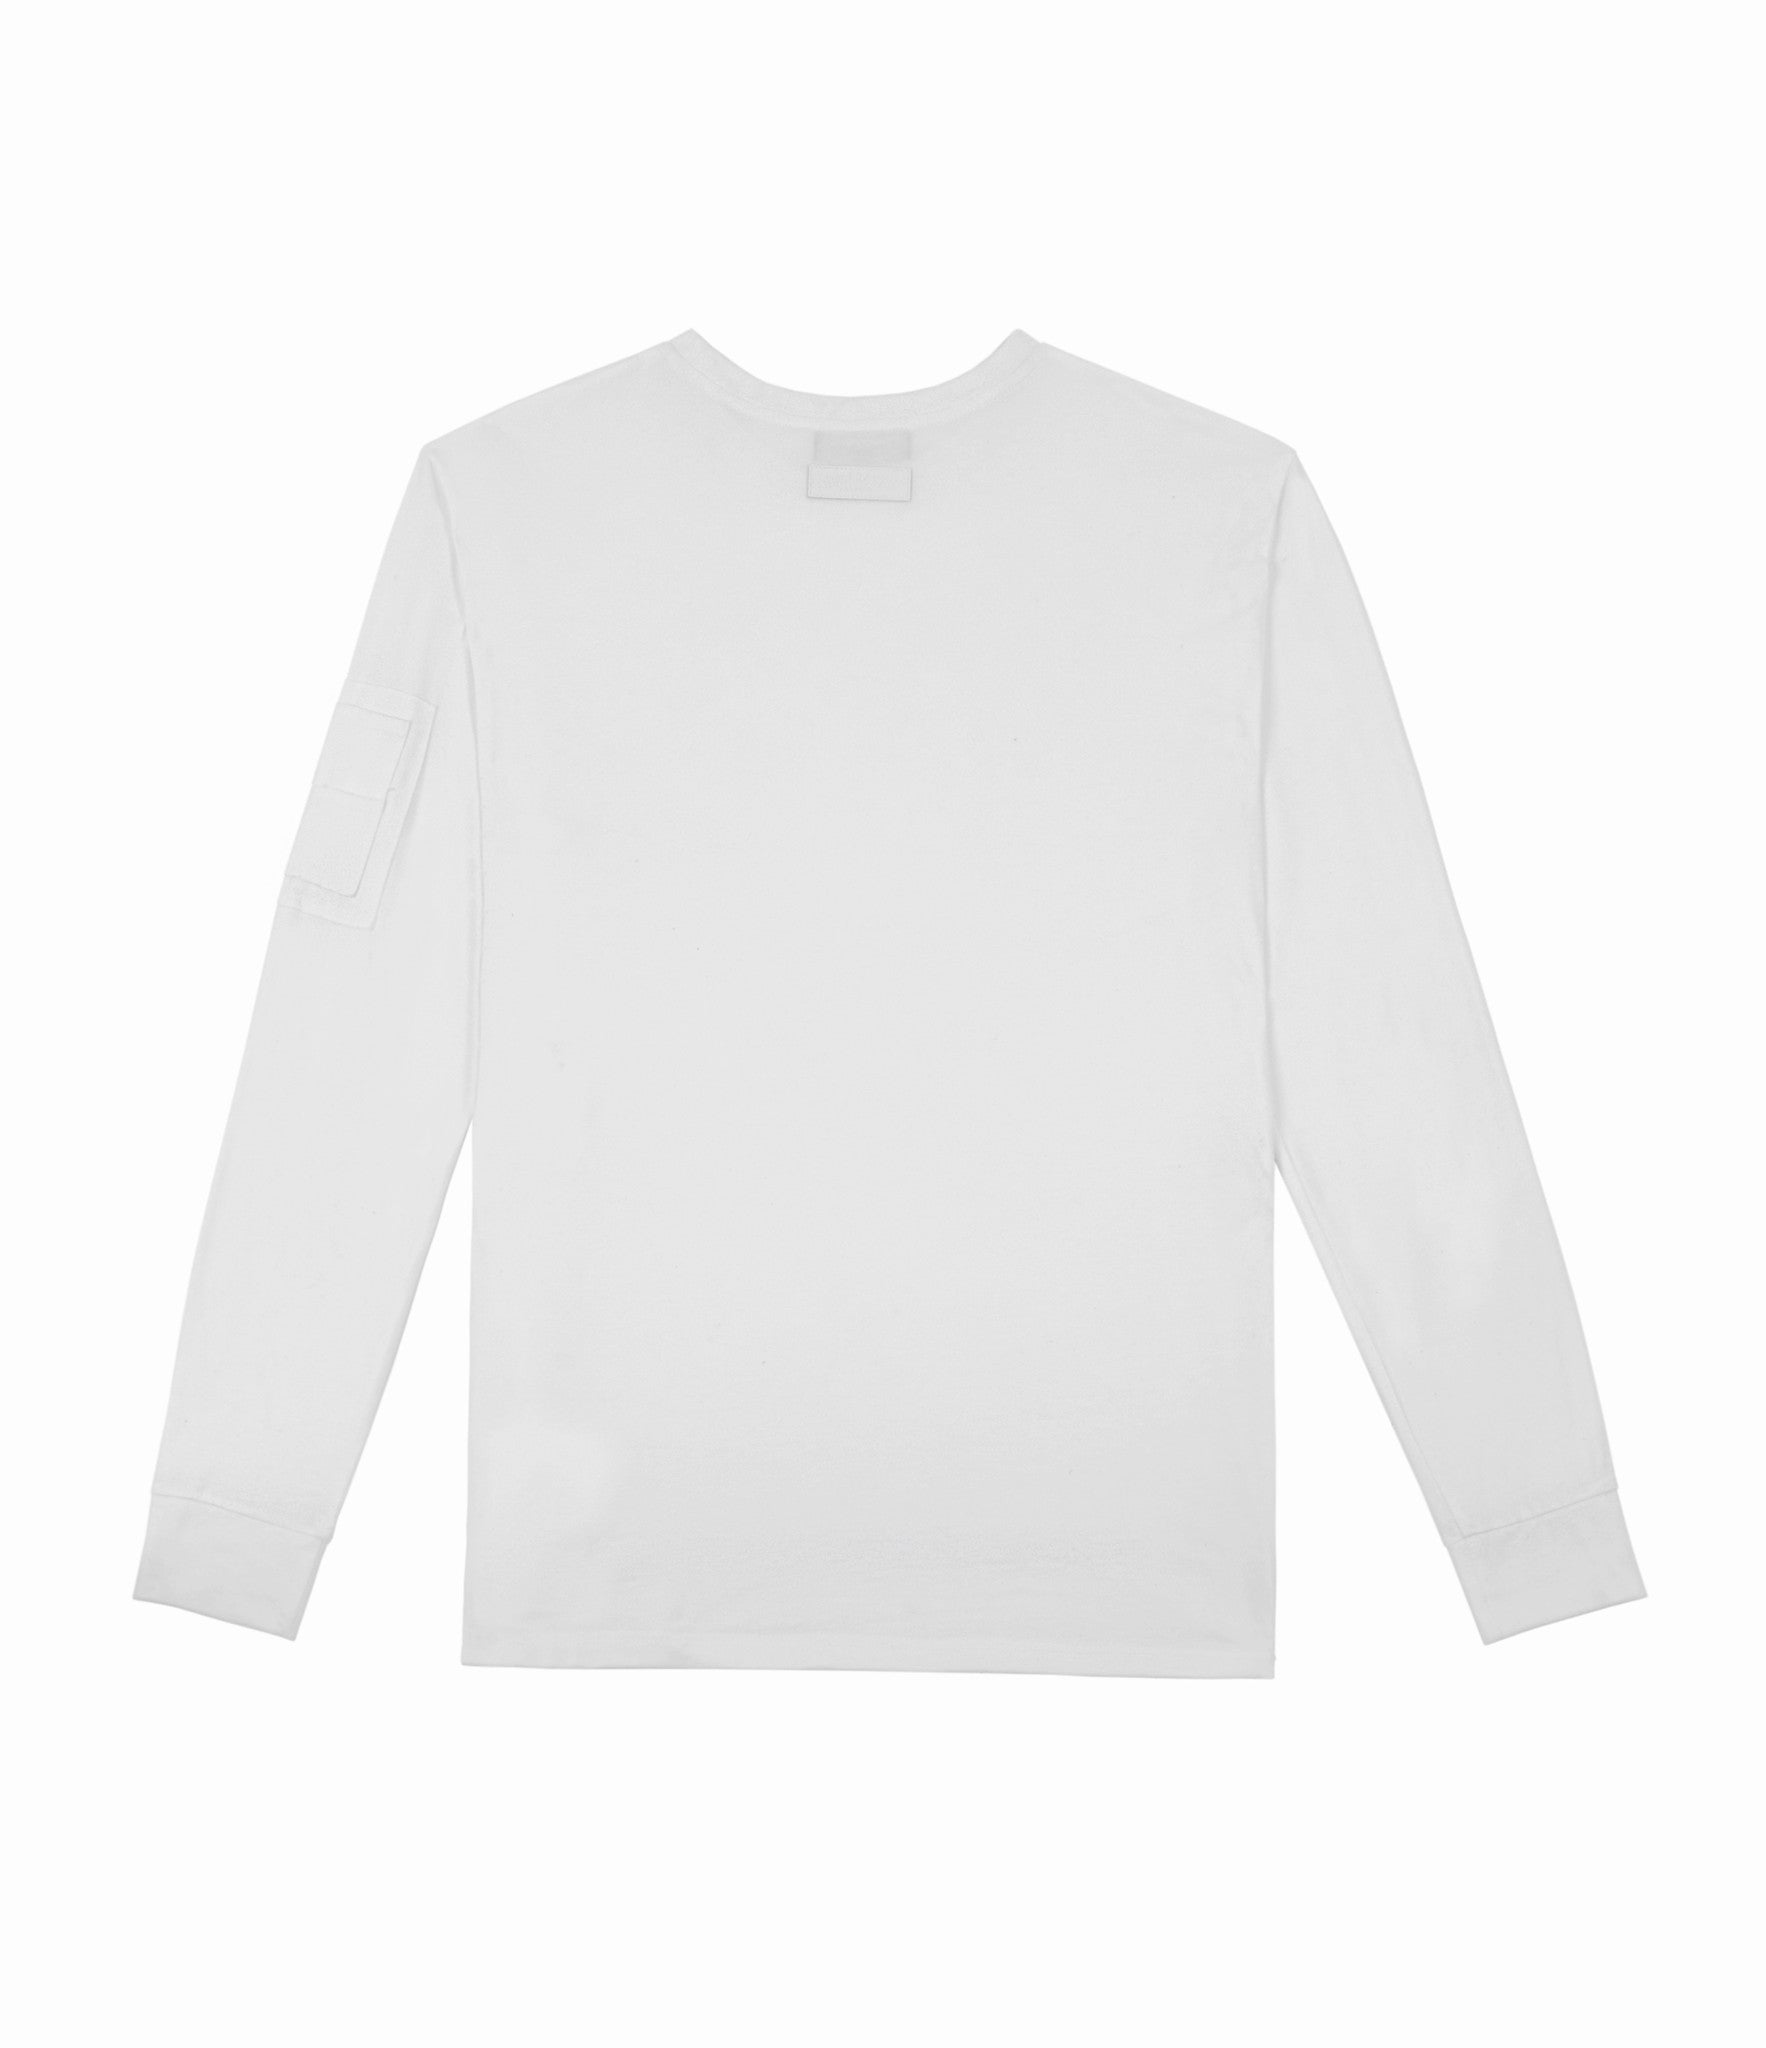 LS303 Utility Long-Sleeve Tee - White - underated london - underatedco - 3